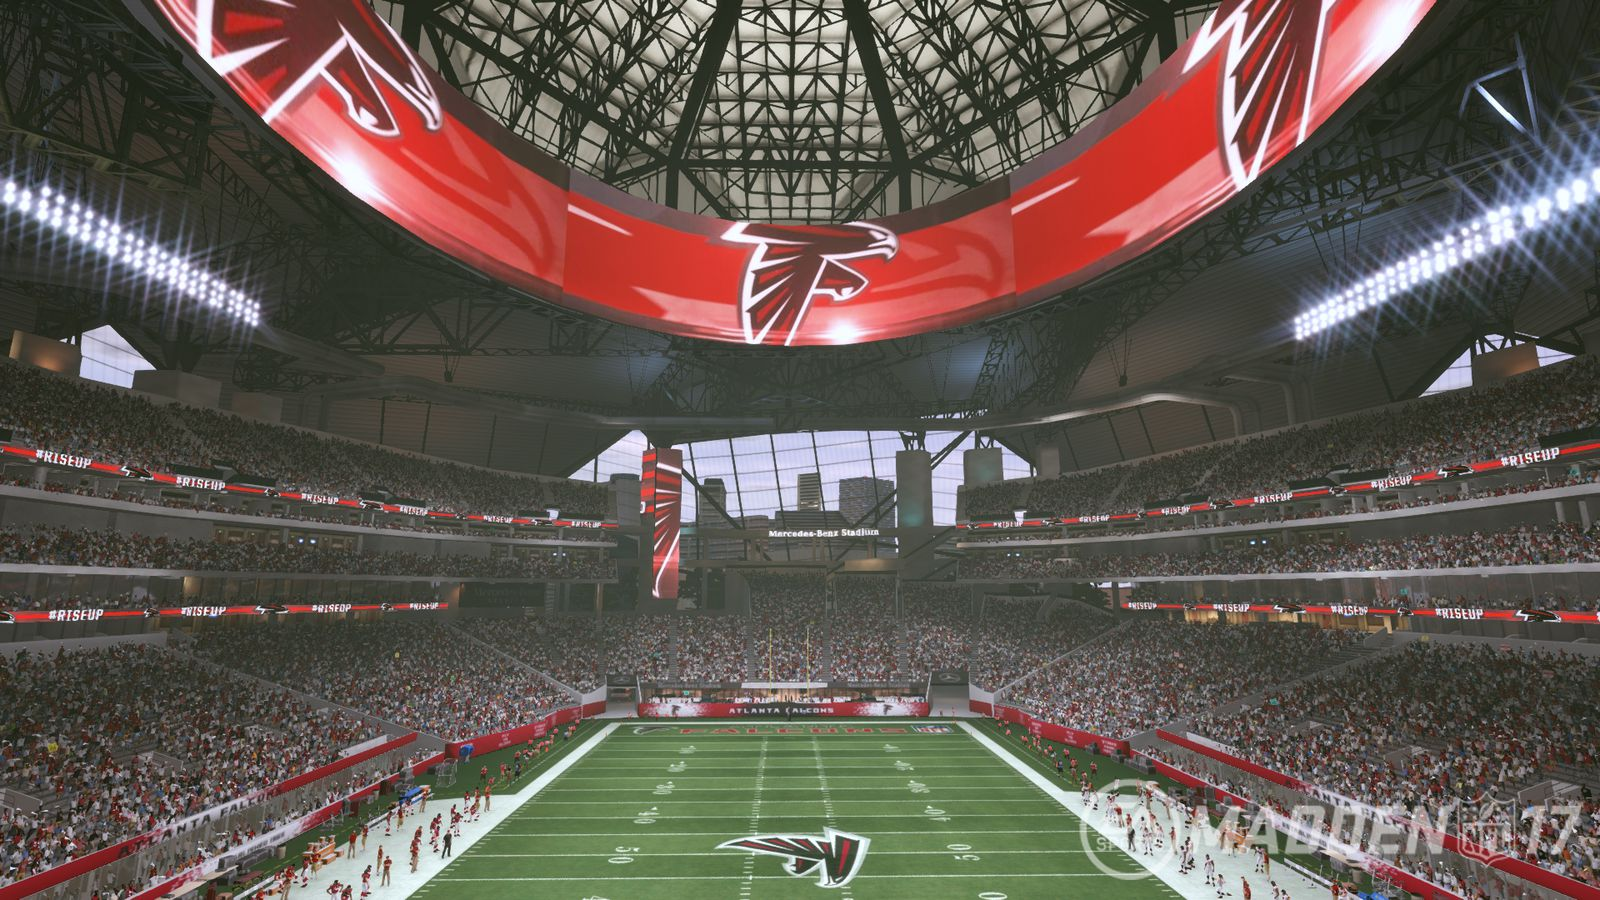 Mercedes benz stadium in madden nfl 17 the falcoholic for Mercedes benz stadium season tickets